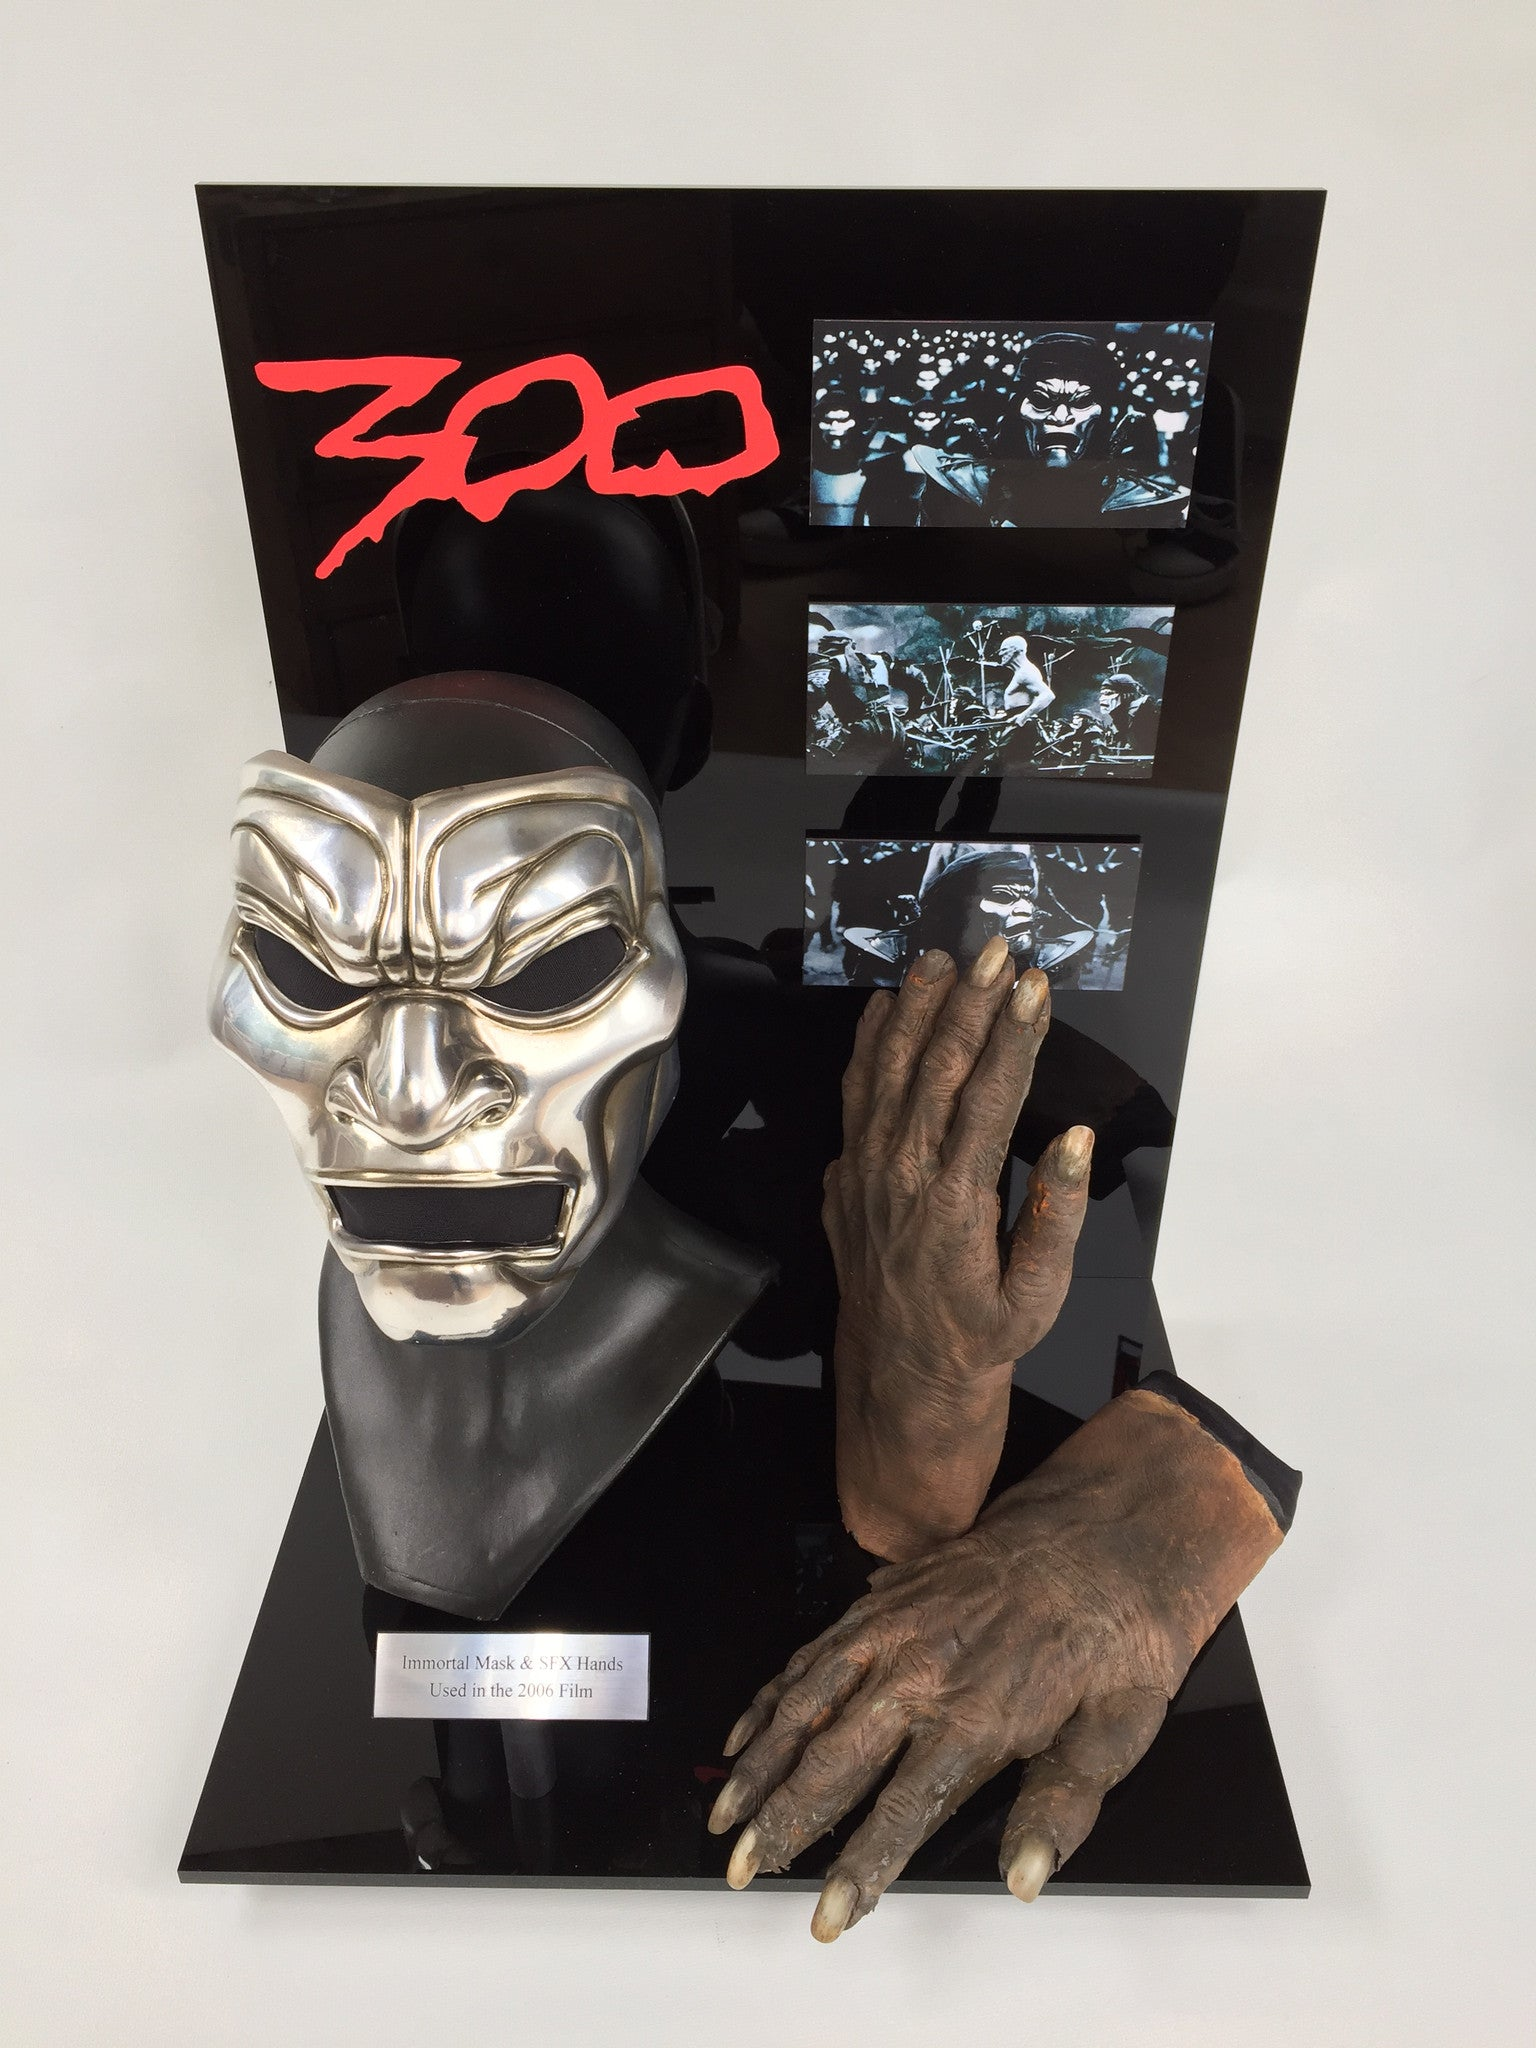 300 (2006) Immortal Mask & SFX Gloves - SOLD